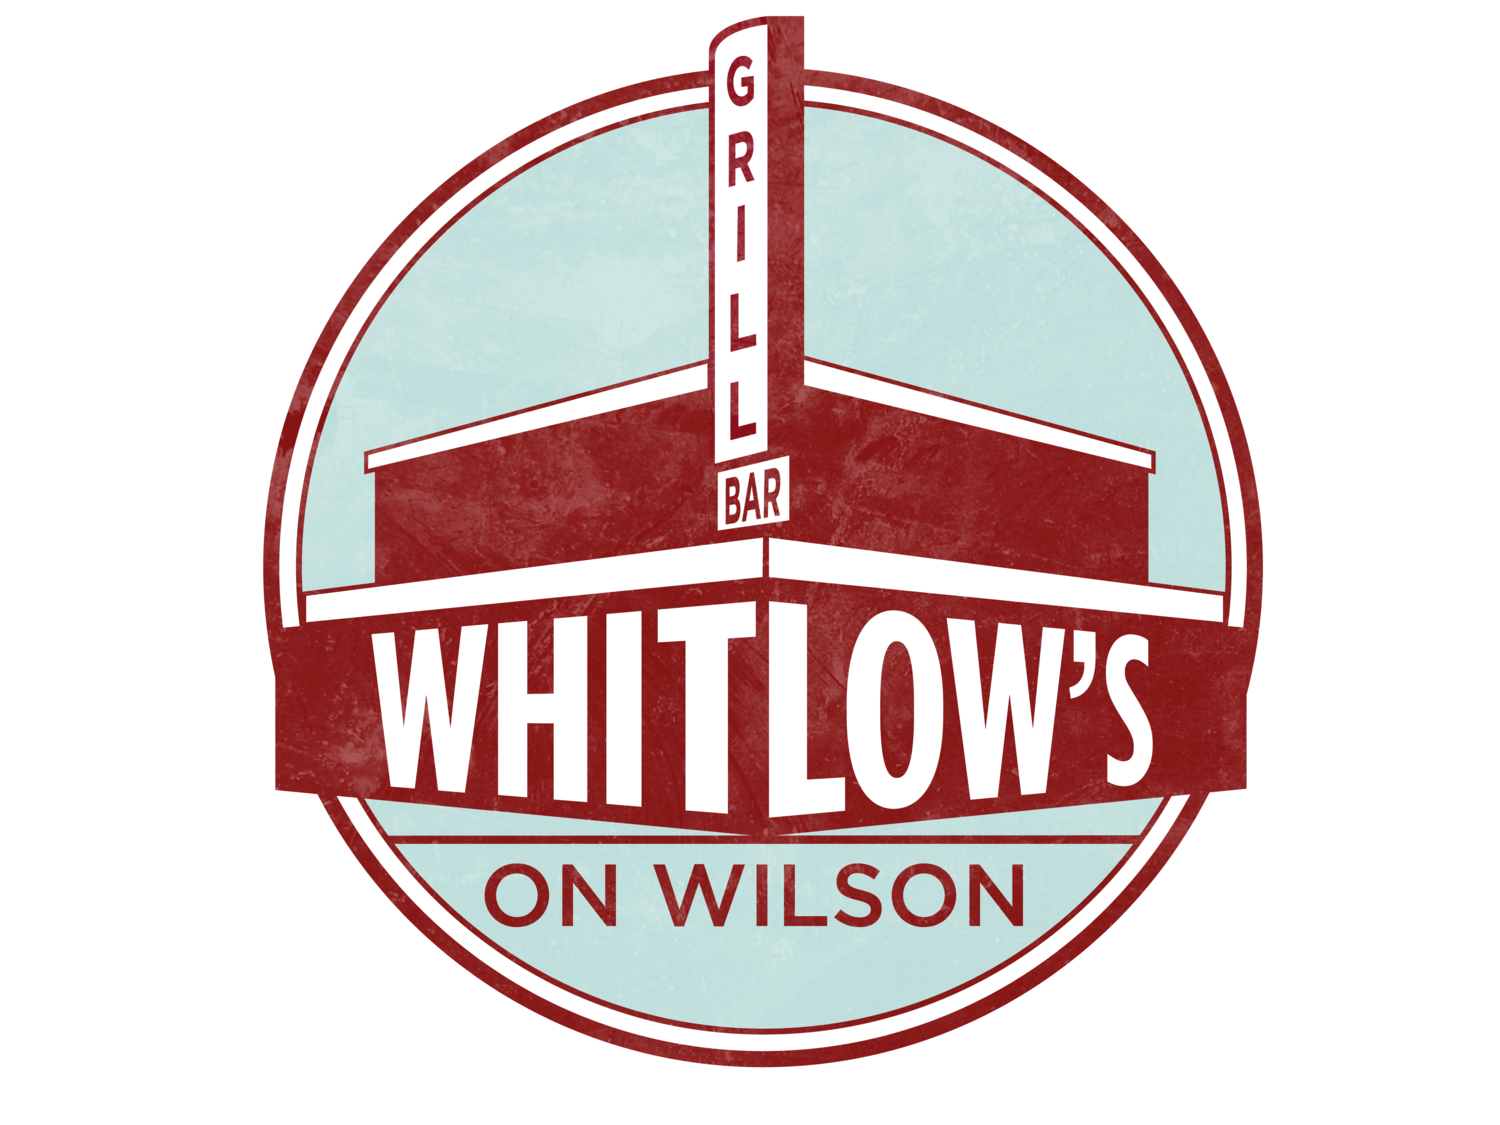 Whitlow's on Wilson - Neighborhood Bar, Brunch Buffet, and Rooftop Tiki Bar